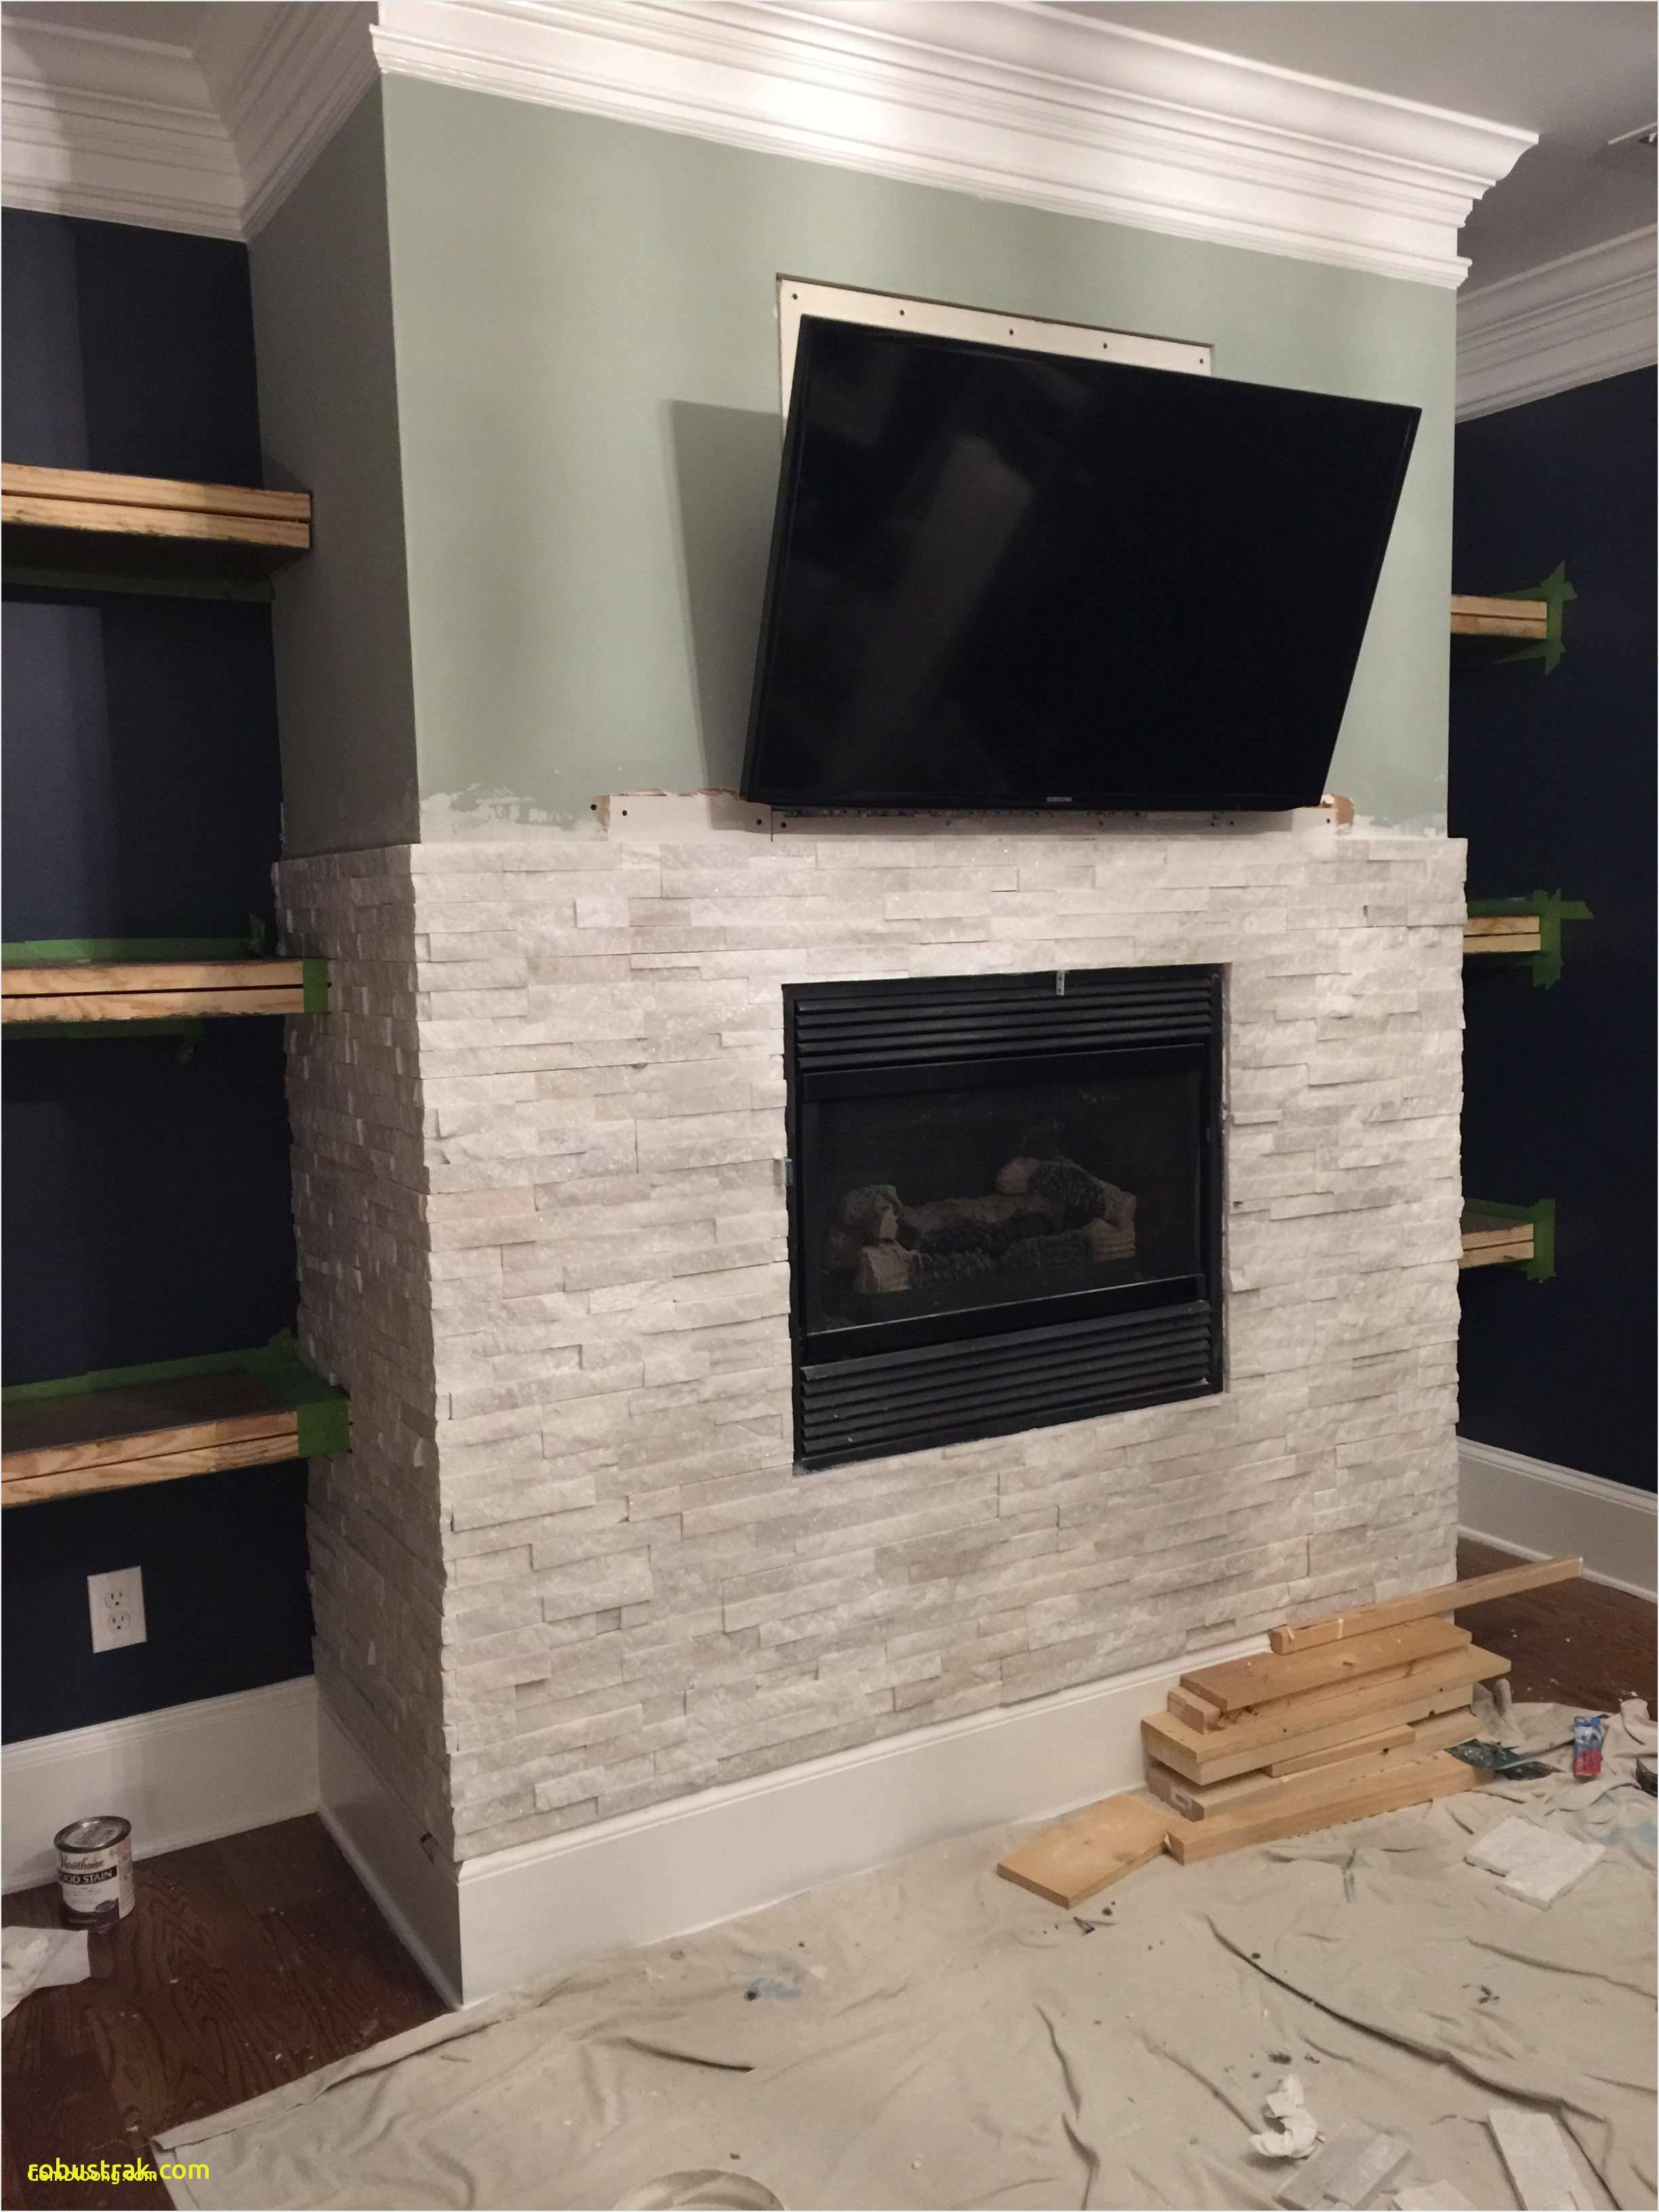 terrazzo design bello chic wood fireplace within stone fireplace lovely porch marble di terrazzo design